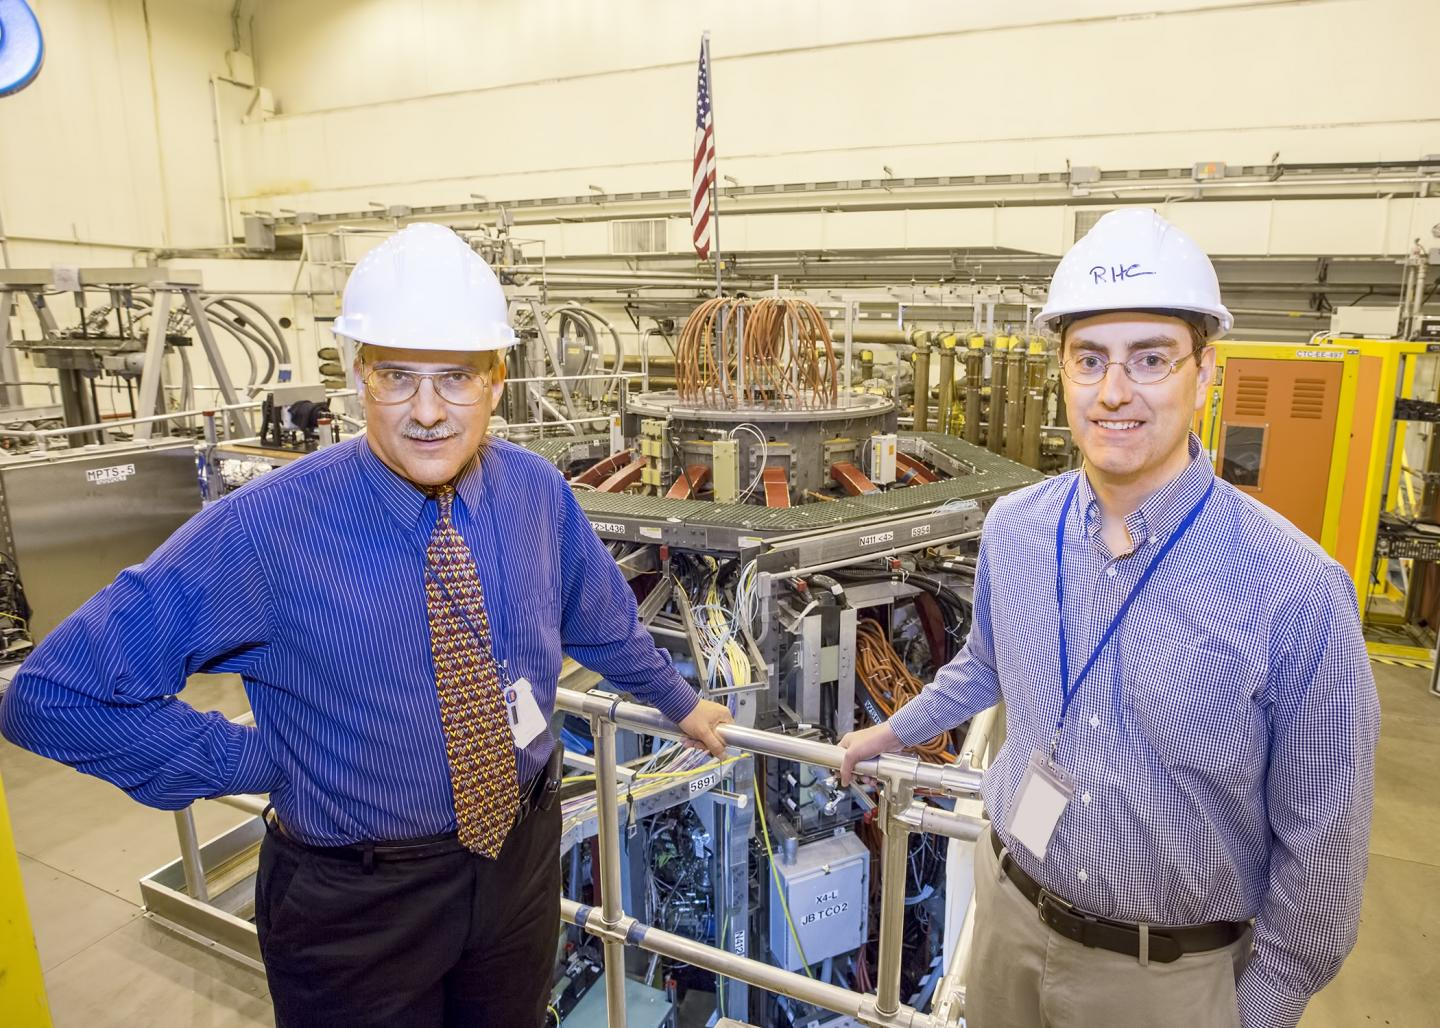 This research was reported in a paper published in physics of plasmas in february 2017 and received funding from the doe s office of science fusion energy